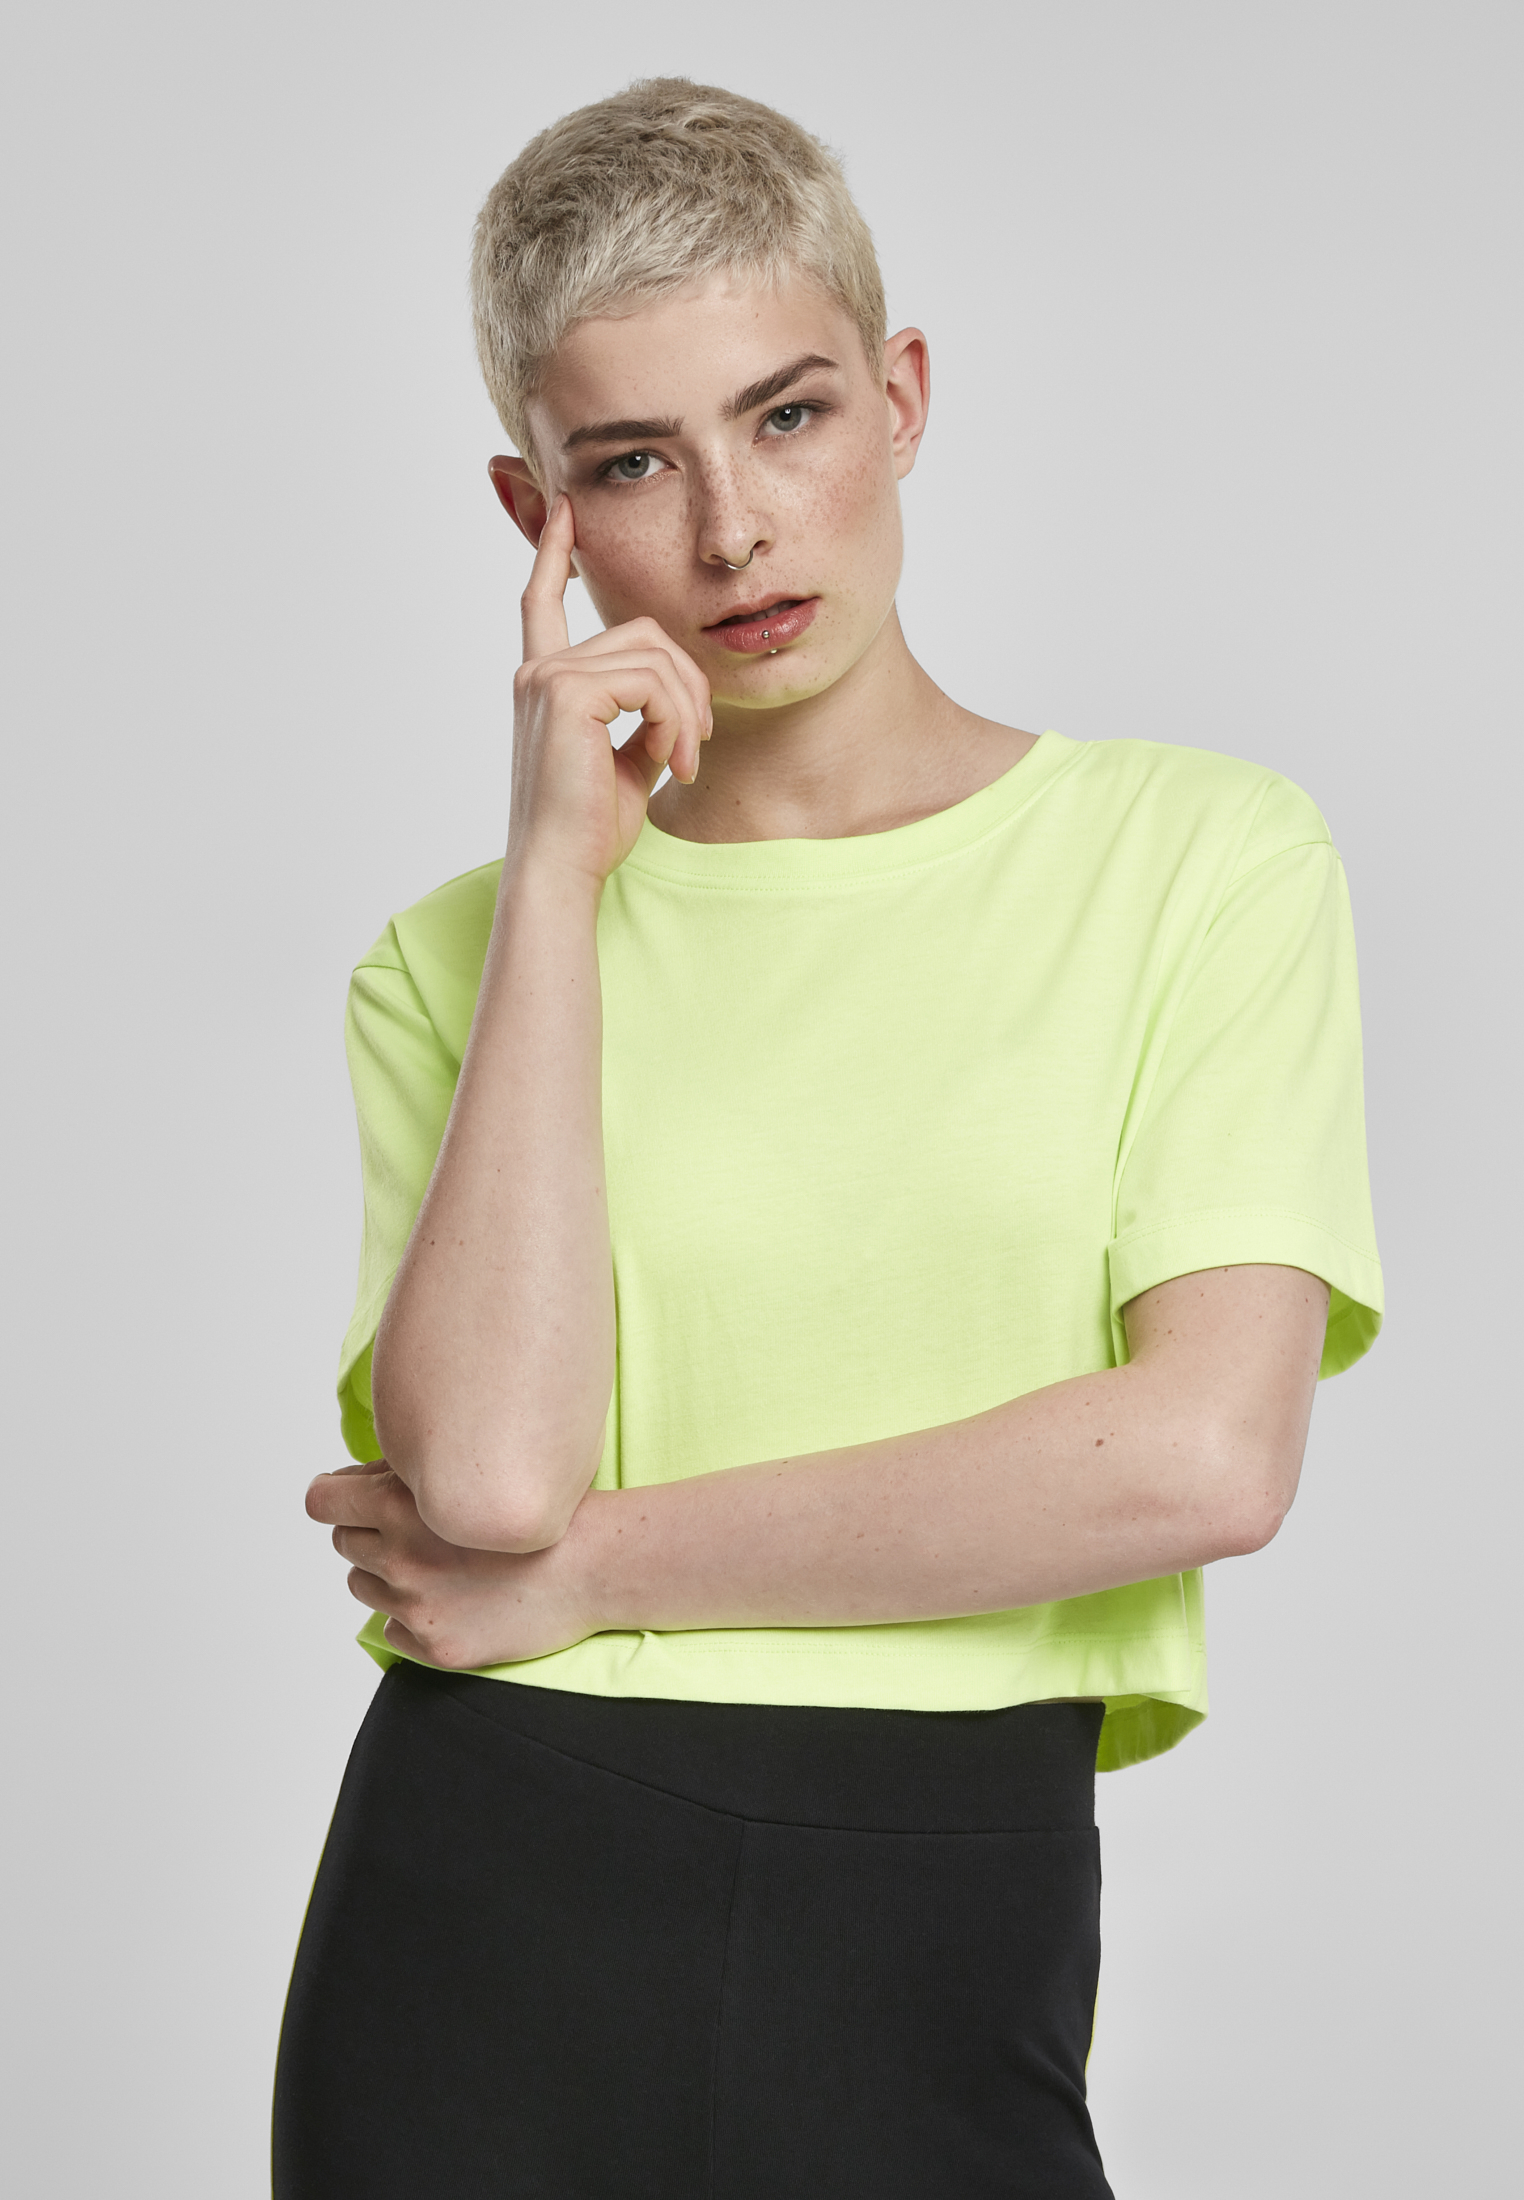 Ladies Short Oversized Neon Tee electriclime 3XL